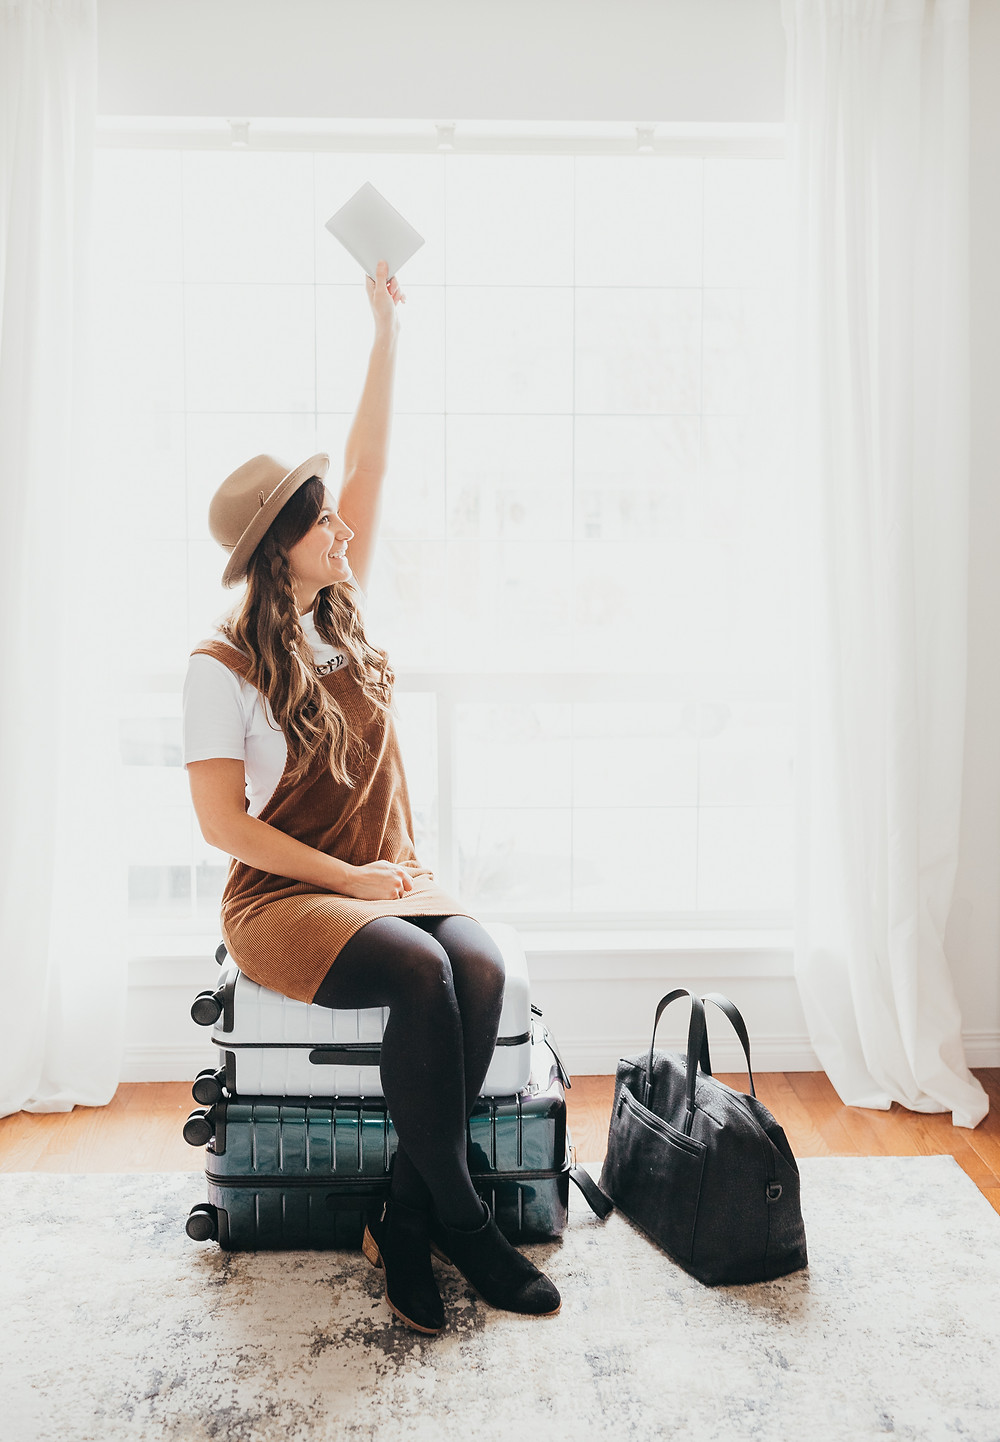 A girl sitting on some stacked luggage holding up a passport excited about her travels.